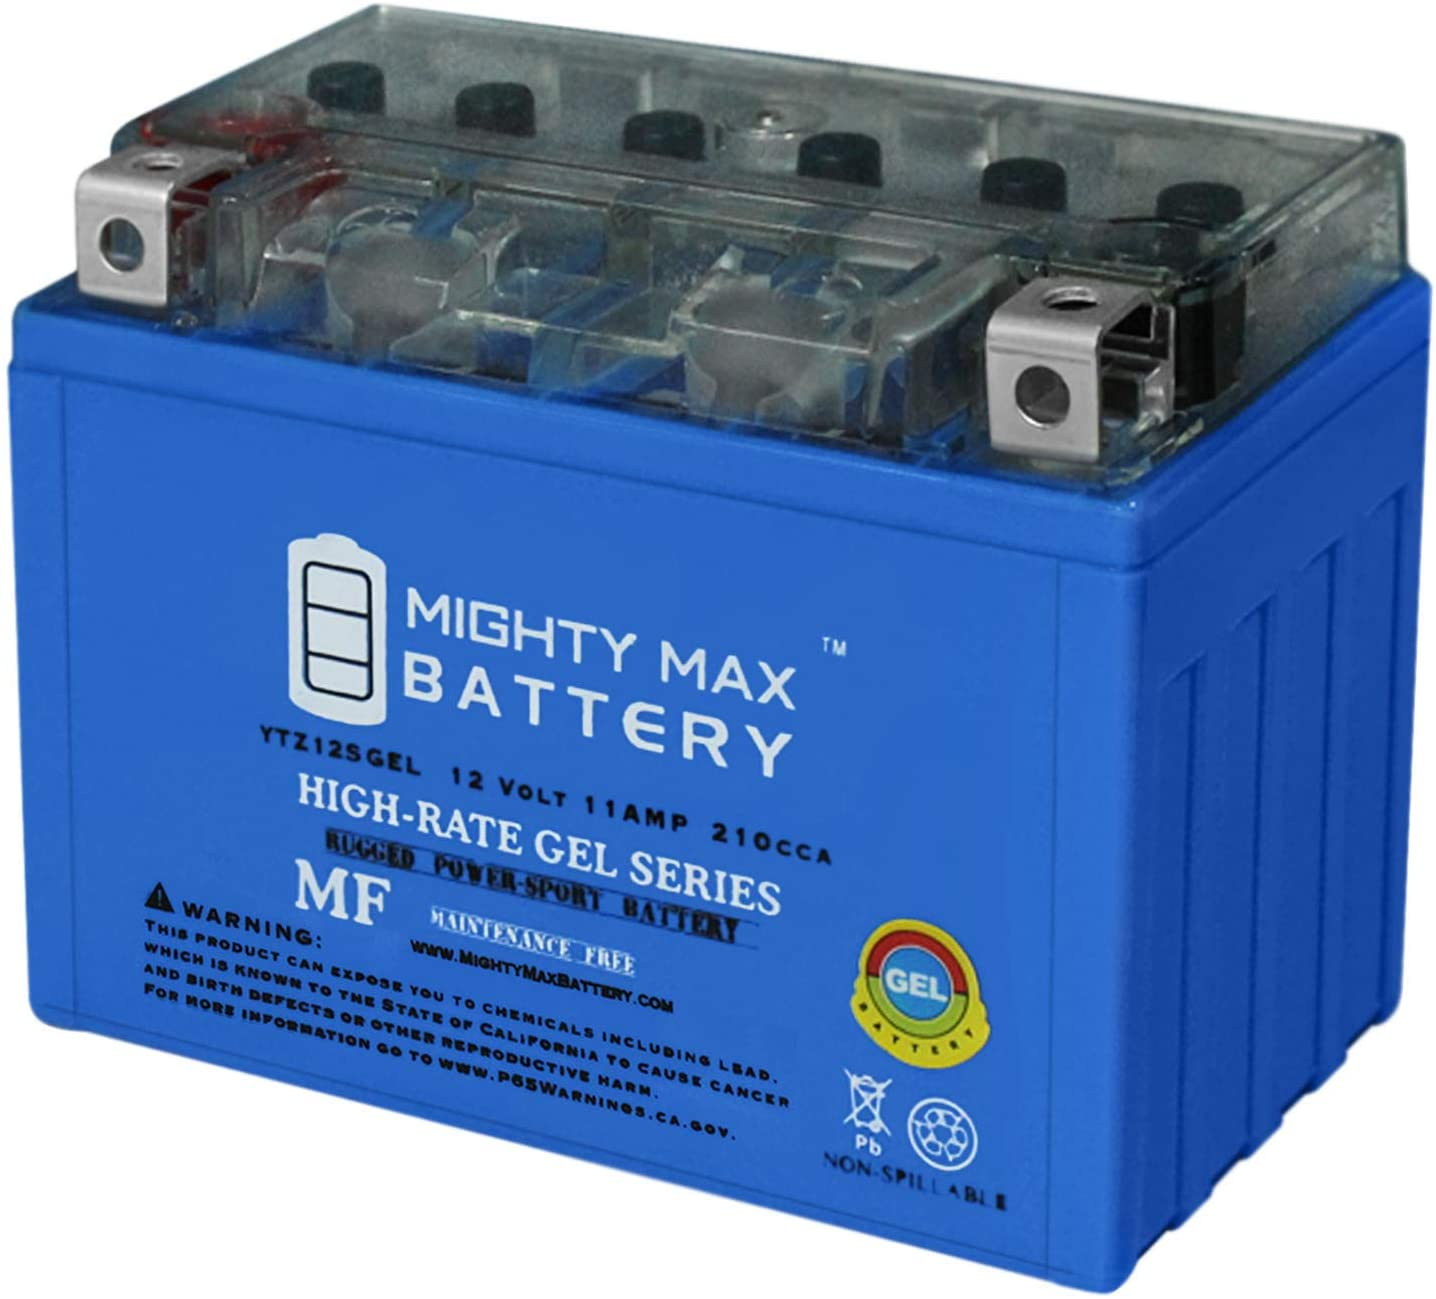 2 Pack Brand Product Mighty Max Battery 12V 18Ah SLA Battery for Door King 6400 10W Solar Control